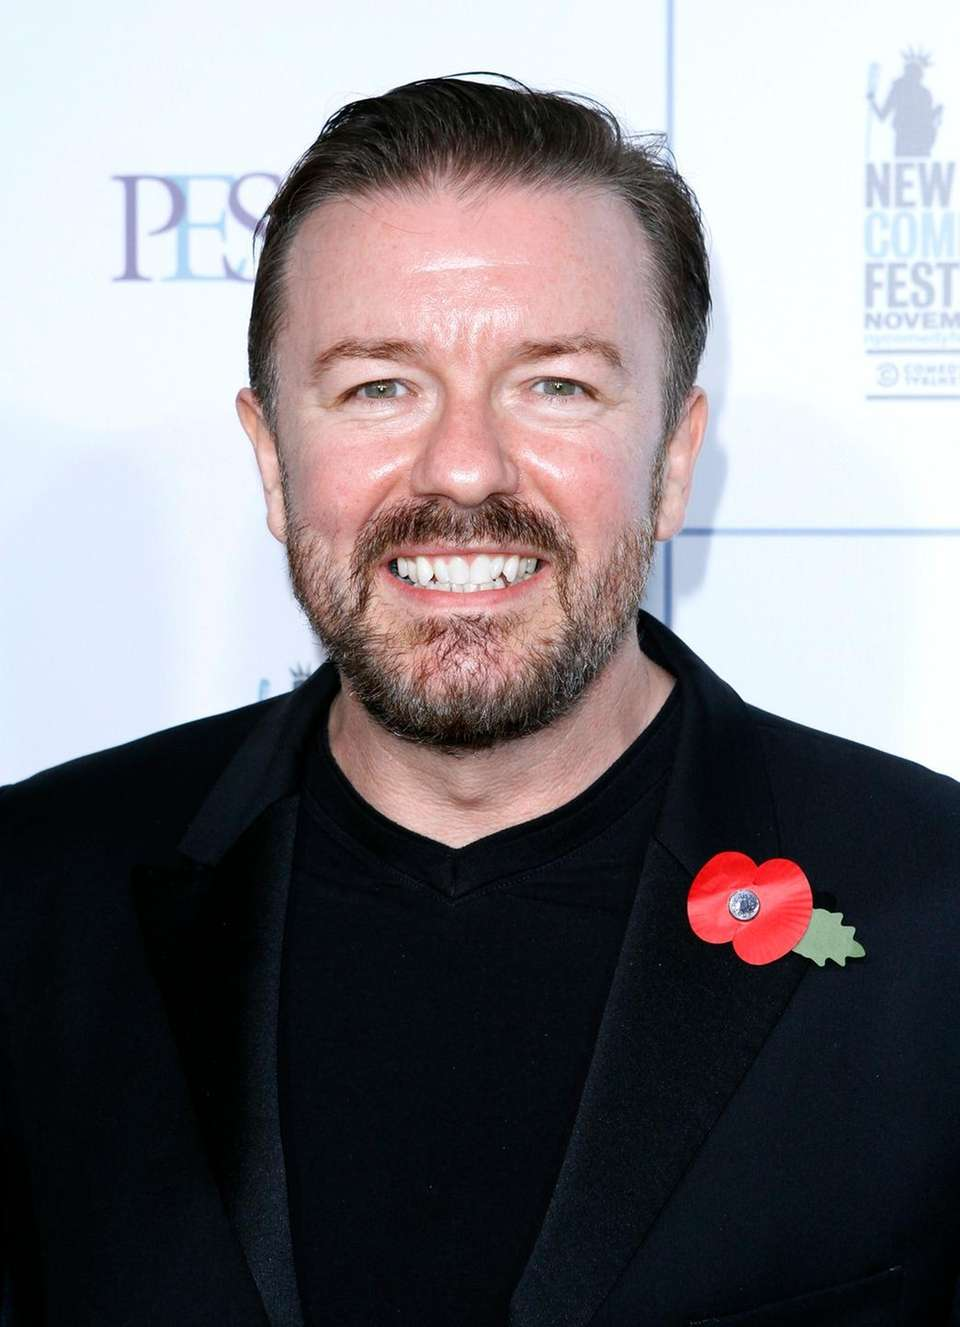 Comedian Ricky Gervais was born on June 25,